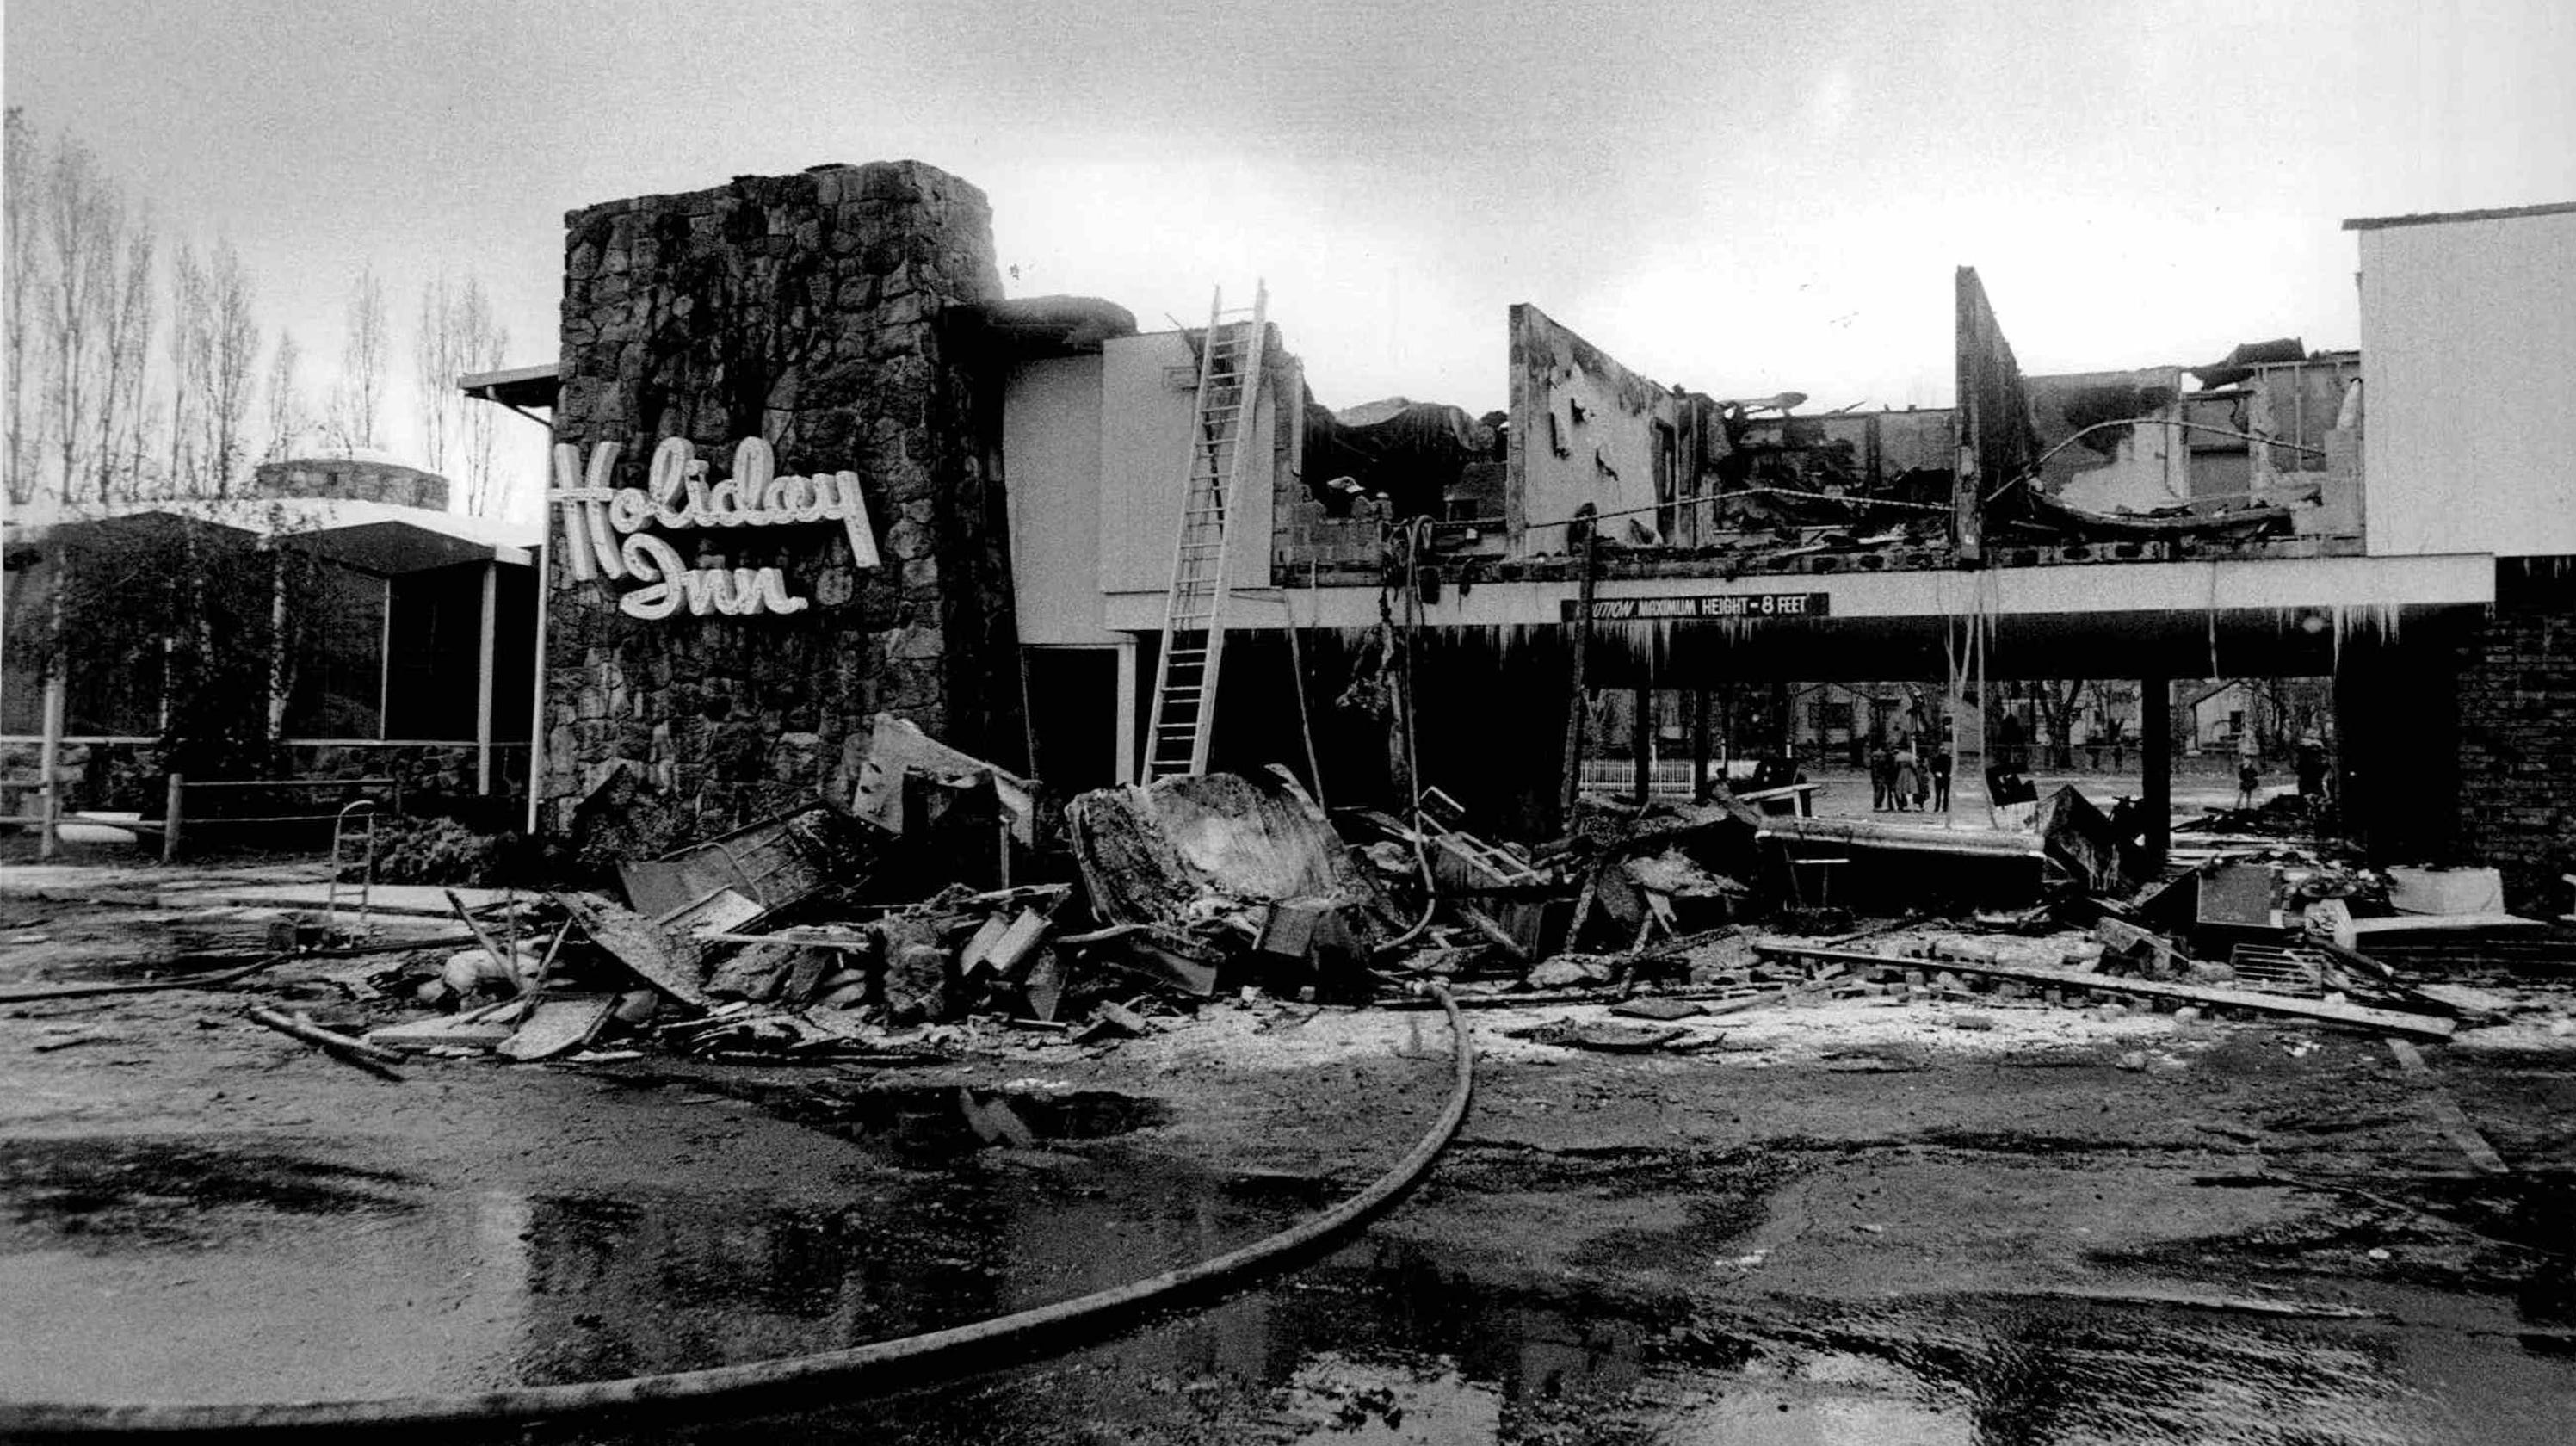 Greece, NY Holiday Inn fatal fire: Timeline of a tragedy